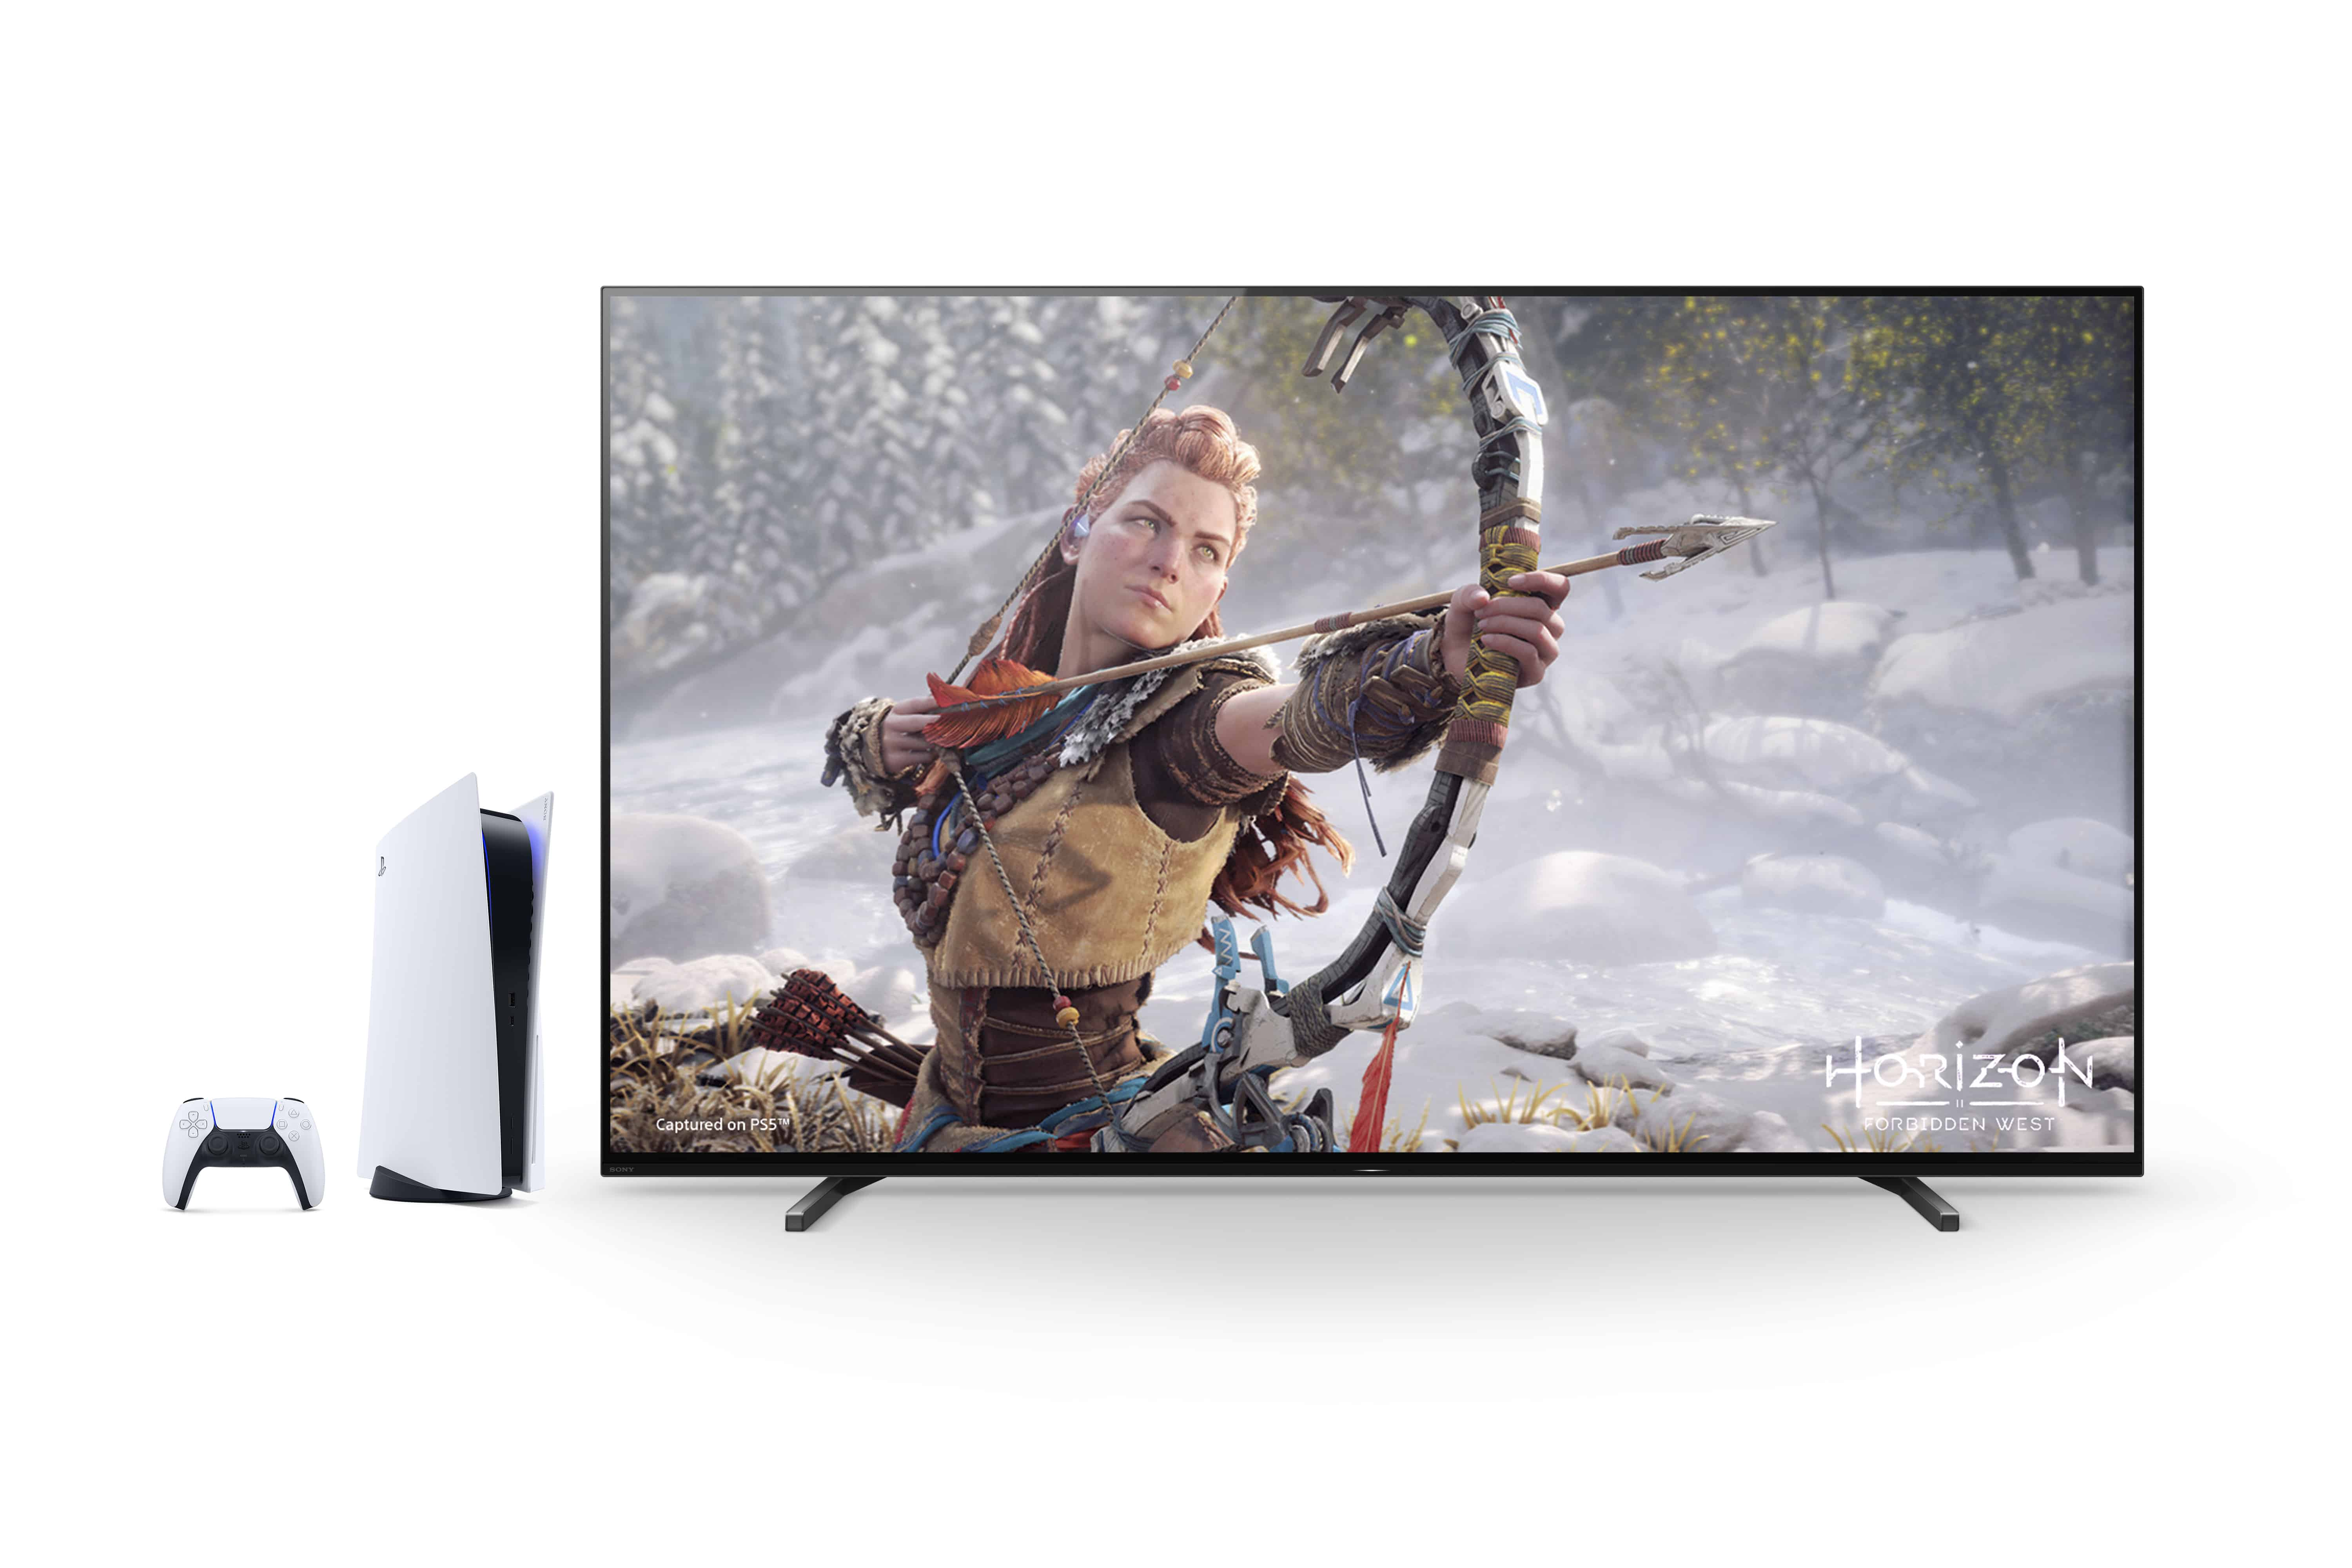 Sony Bravia XR PS5 TV Features